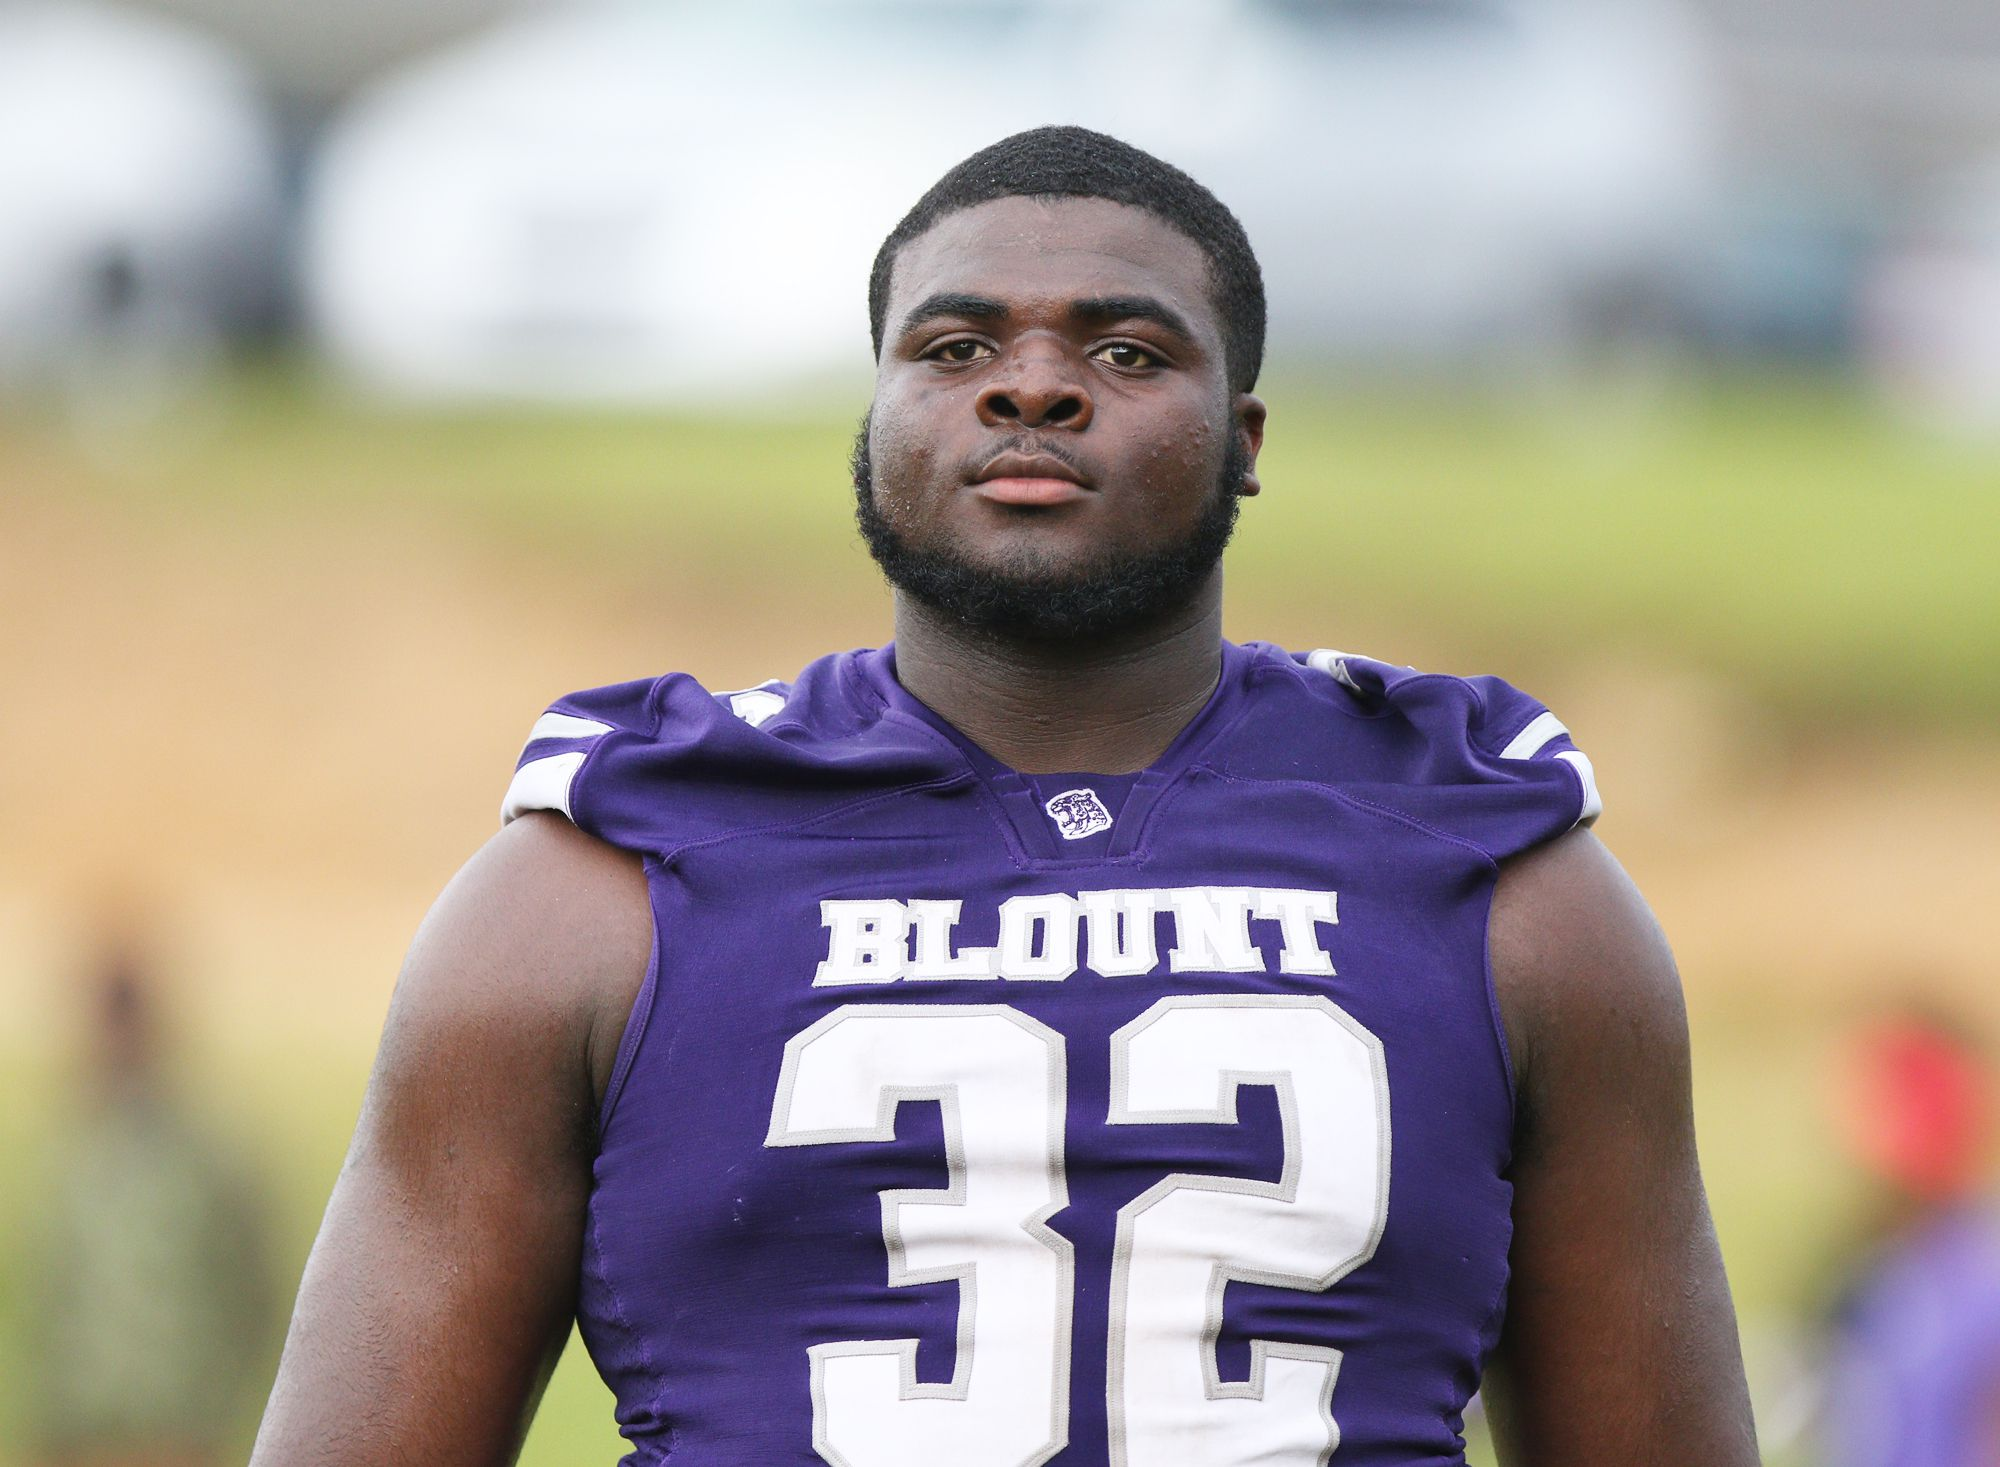 Defensive Tackle Lee Hunter Rules Defensive Front to Lead Blount to Third Straight Win